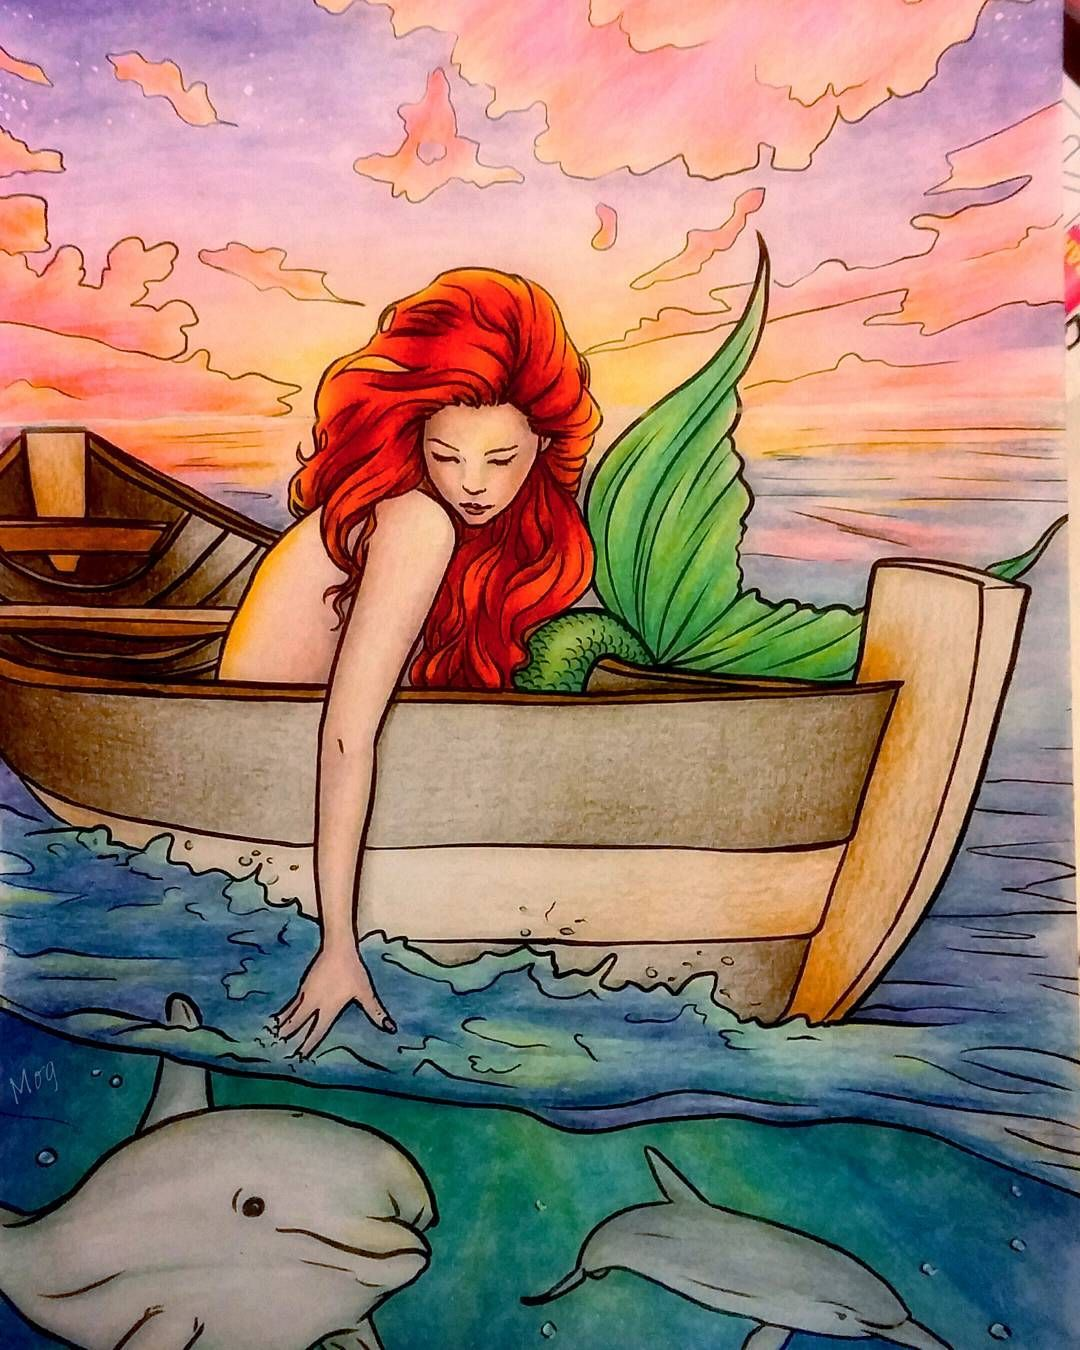 #colorselina  #mermaids  #coloringbook  #adultcoloringbook  #prismacolor  #dolphin  #colouring  #audreymog